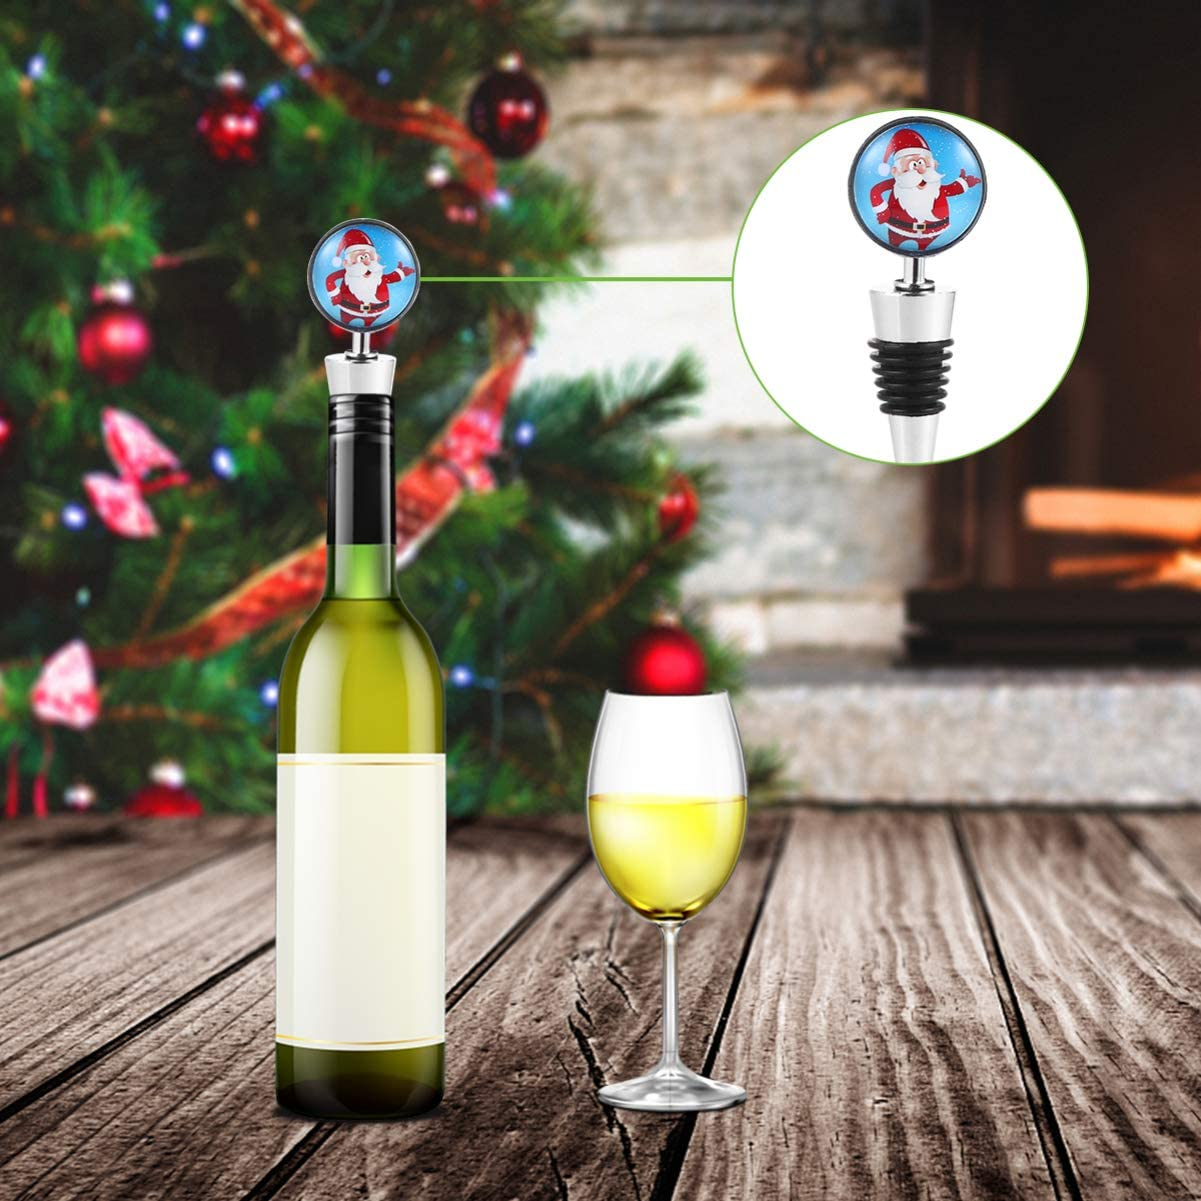 NUOBESTY Christmas Wine Bottle Stopper Santa Claus Wine Bottle Plug Beverage Bottle Stopper Wine Accessories for Holiday Winter Wedding Bridal Favor